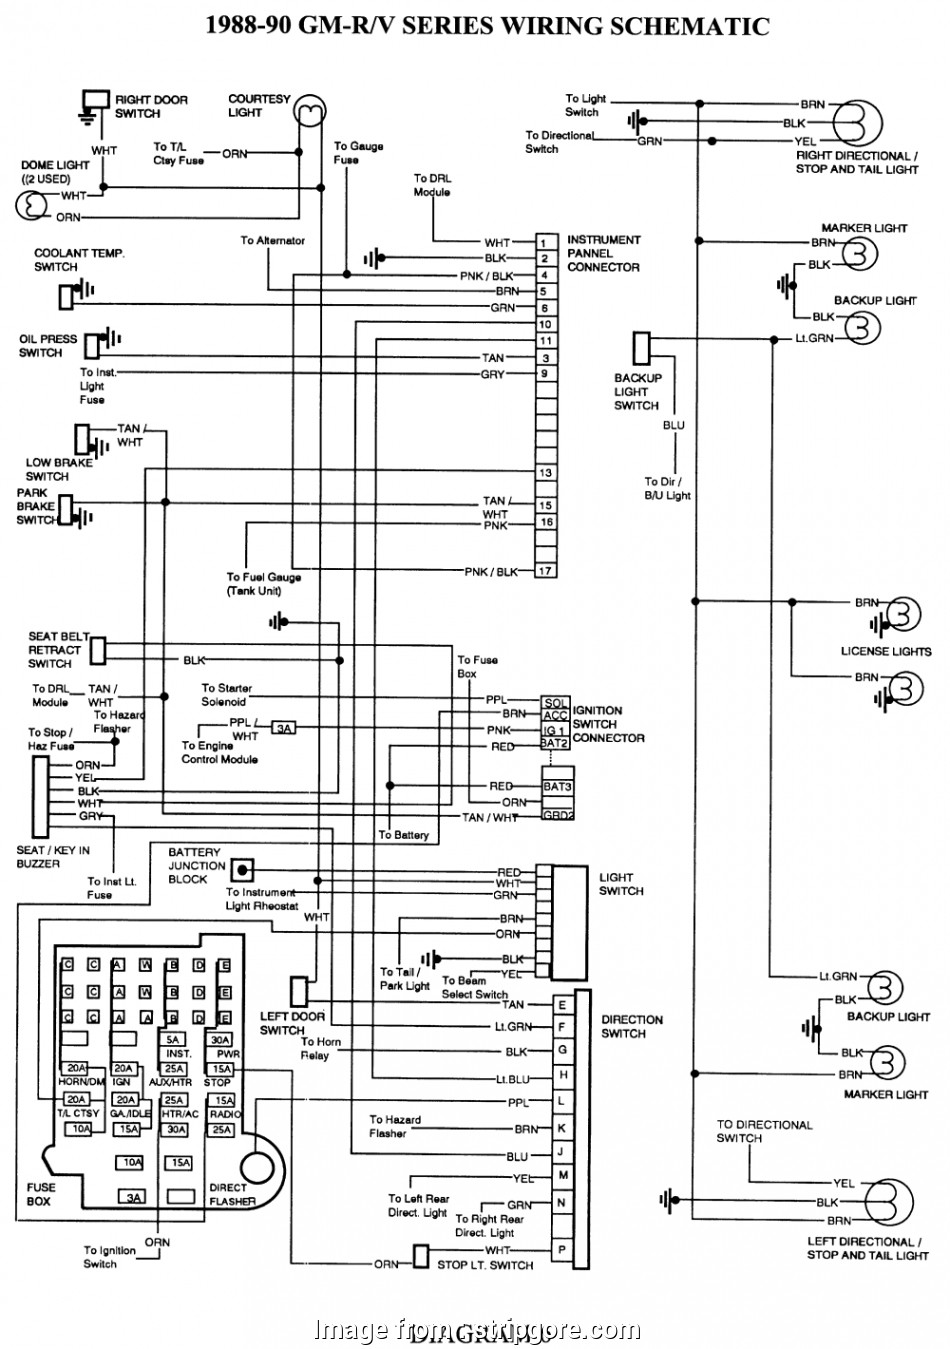 97 Tahoe Starter Wiring Diagram Cleaver Tahoe Ignition